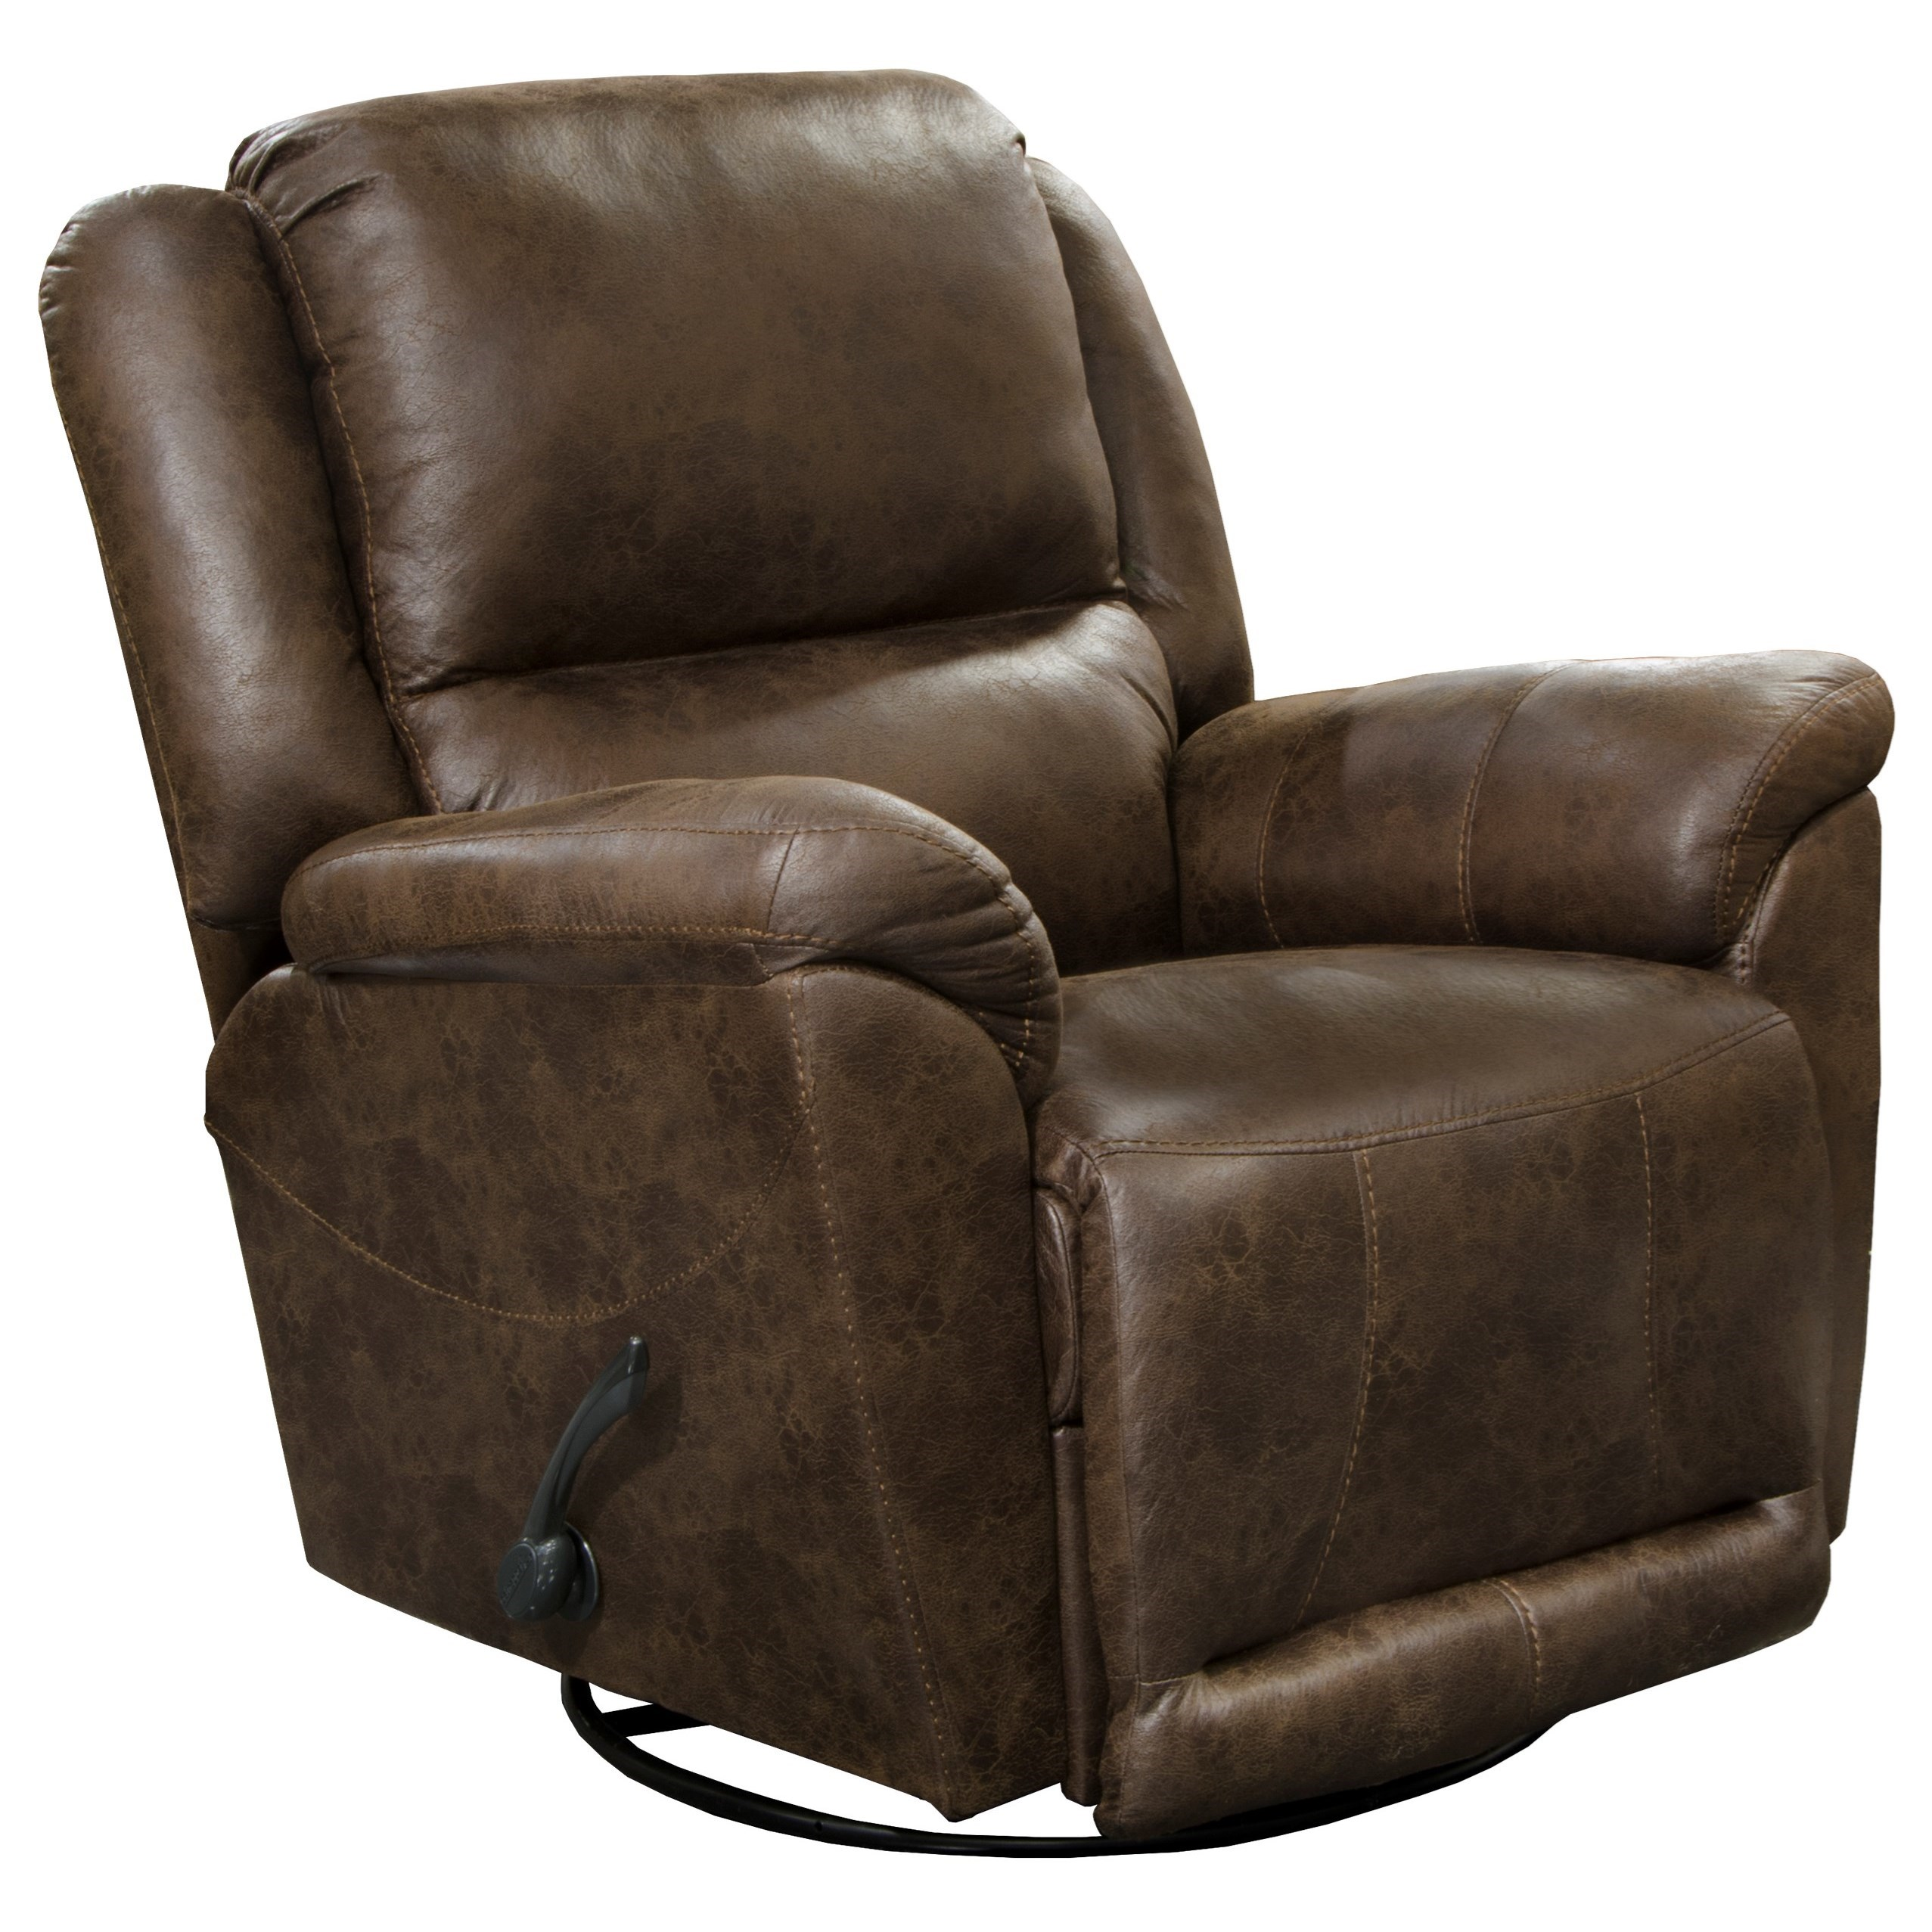 Cole Swivel Glider Recliner by Catnapper at Northeast Factory Direct